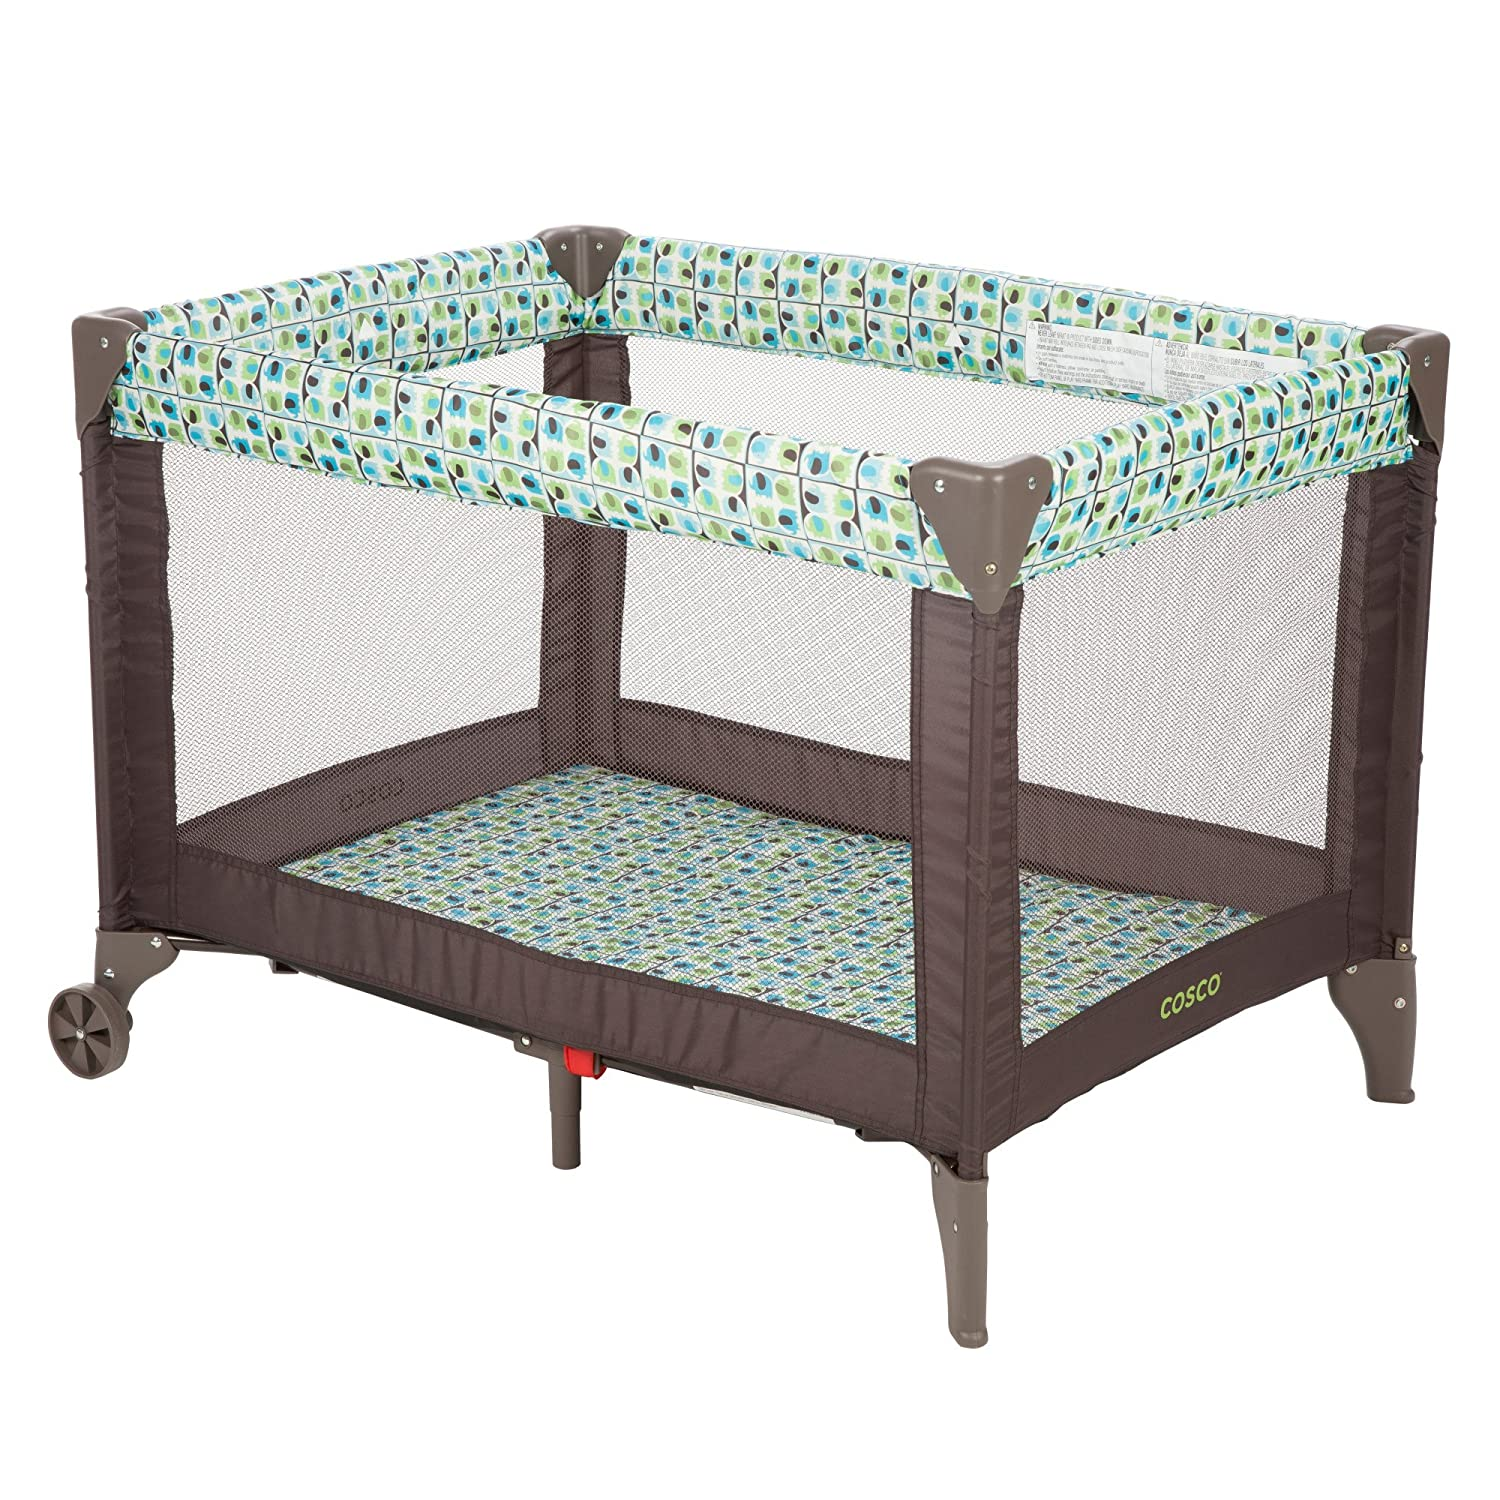 Cosco Funsport Play Yard (Elephant Squares) Cosco Inc PY363DFK